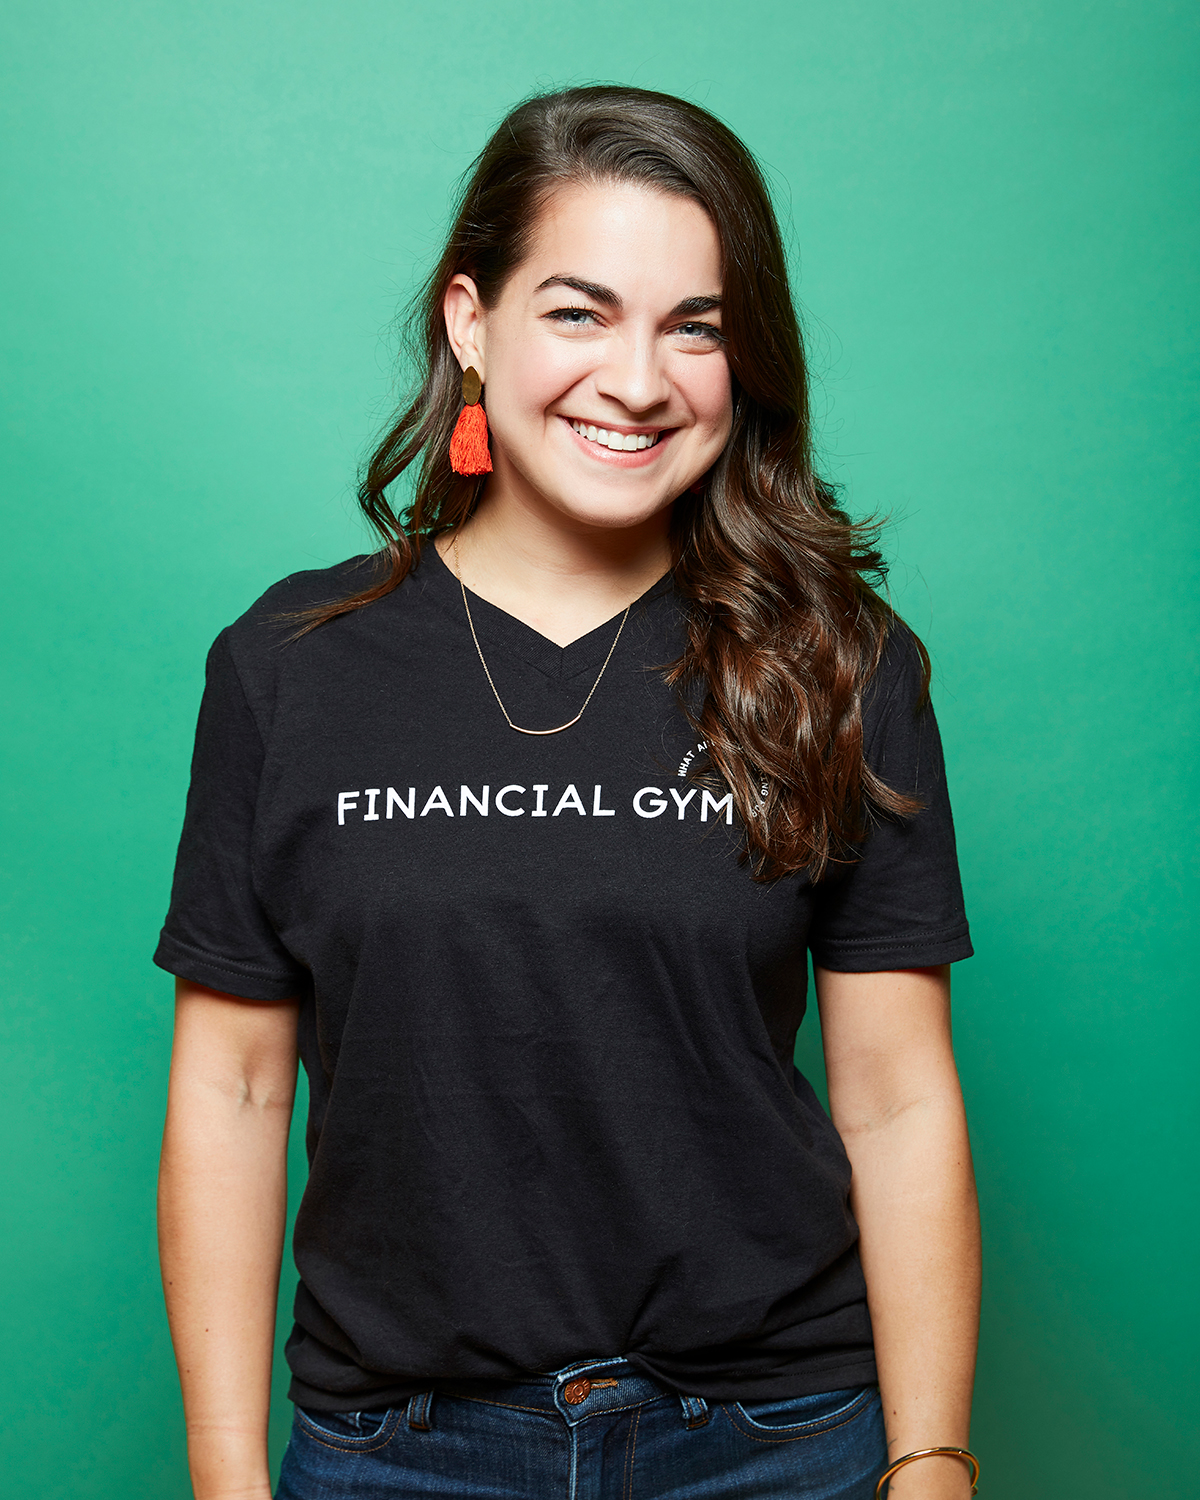 Lindsay Perez | Financial Trainer, The Financial Gym